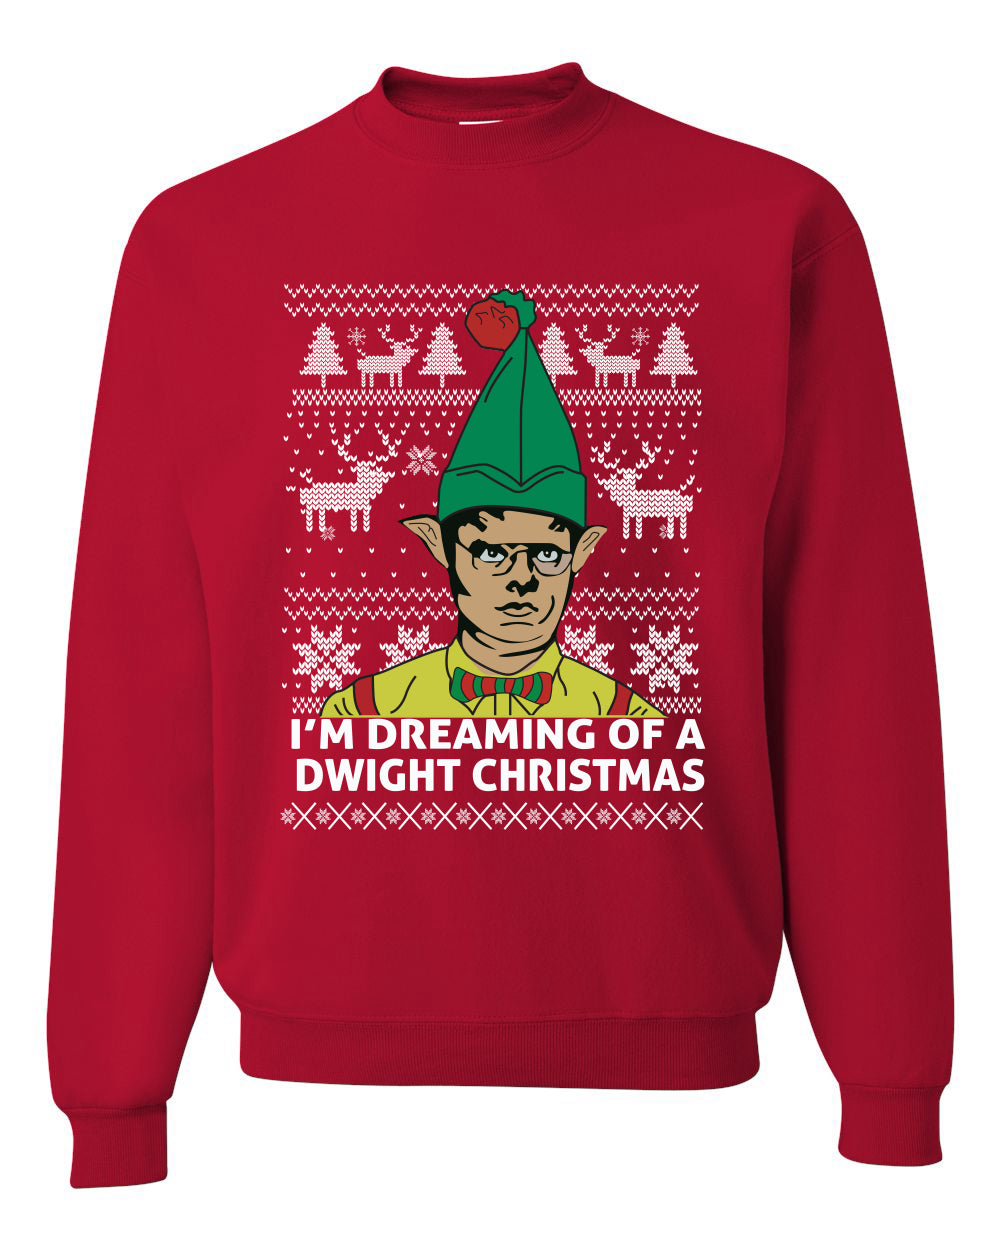 The Office Dwight Dreaming Of A Dwight Christmas Ugly Christmas Sweater Unisex Crewneck Graphic Sweatshirt